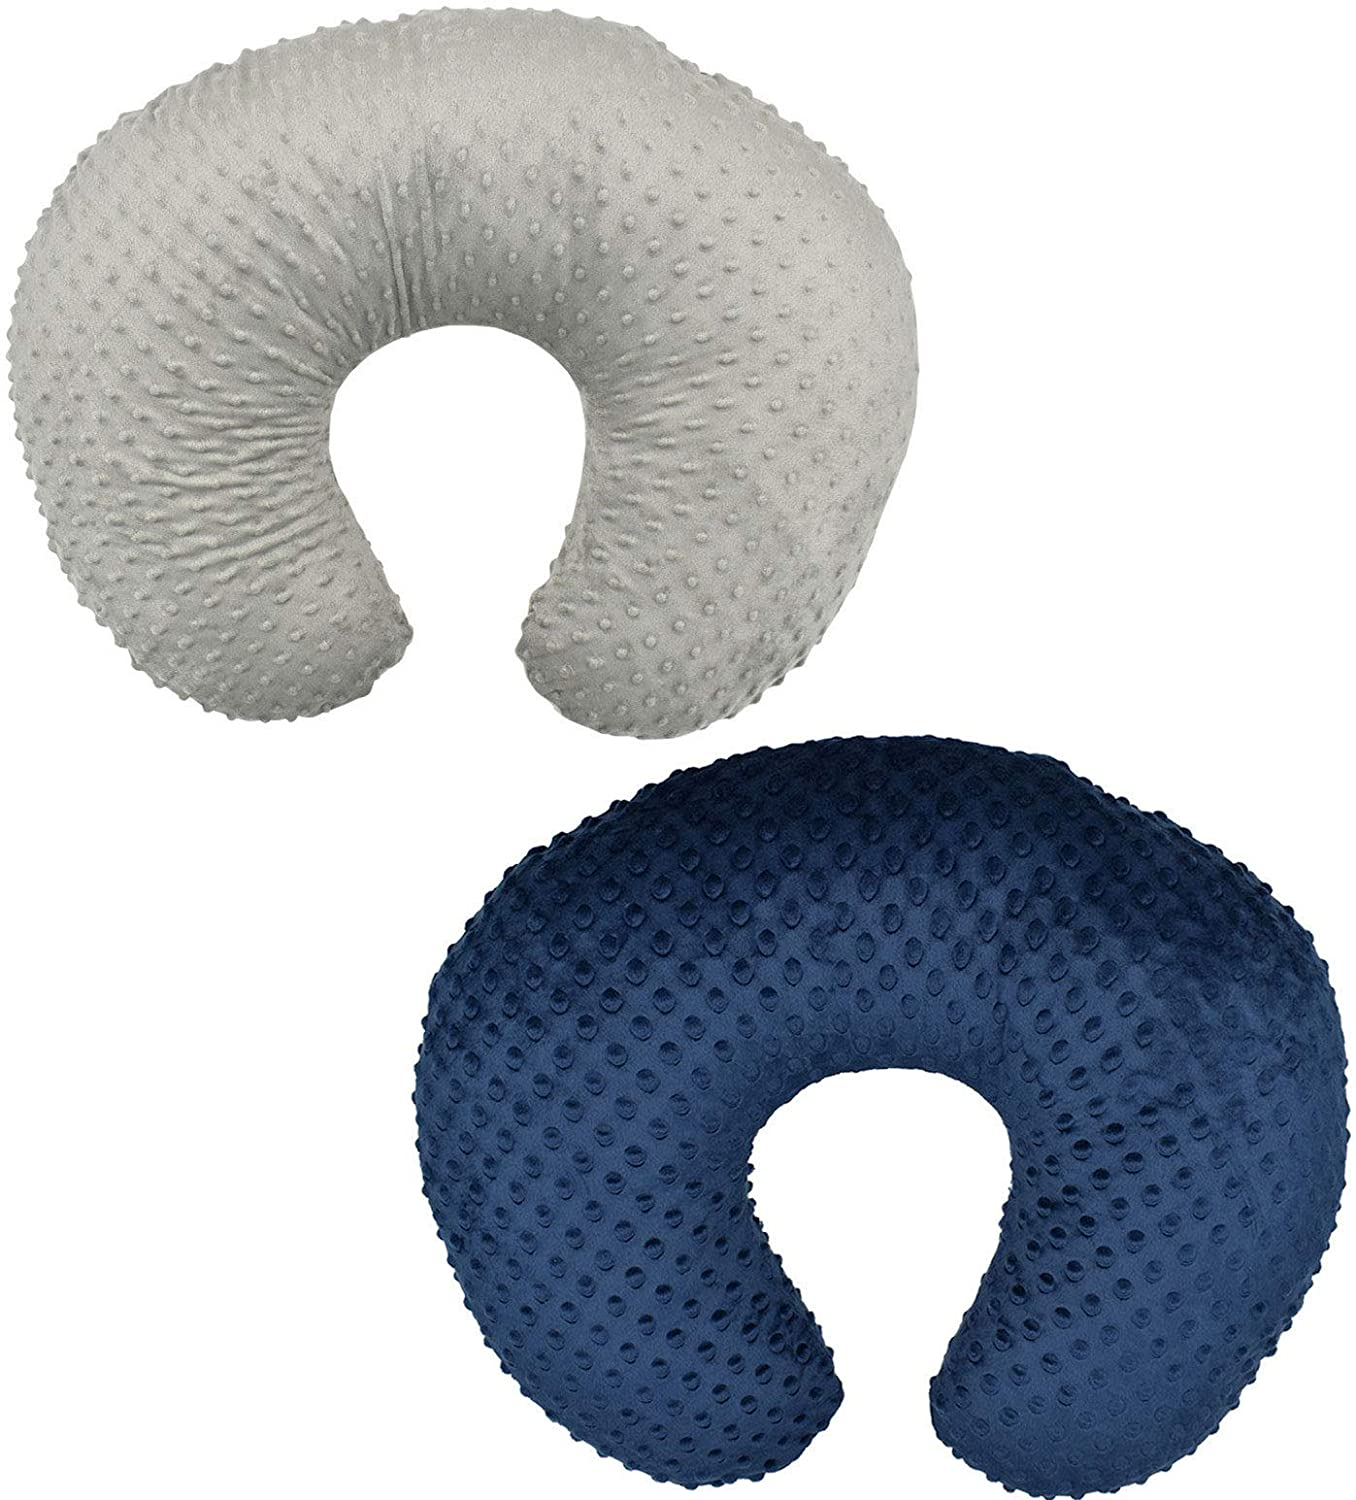 2 Pack Nursing Pillow Cover Slipcover for Breastfeeding Pillows, Soft and Comfortable Safely Fits On Standard Infant Nursing Pillows (Grey & Blue)